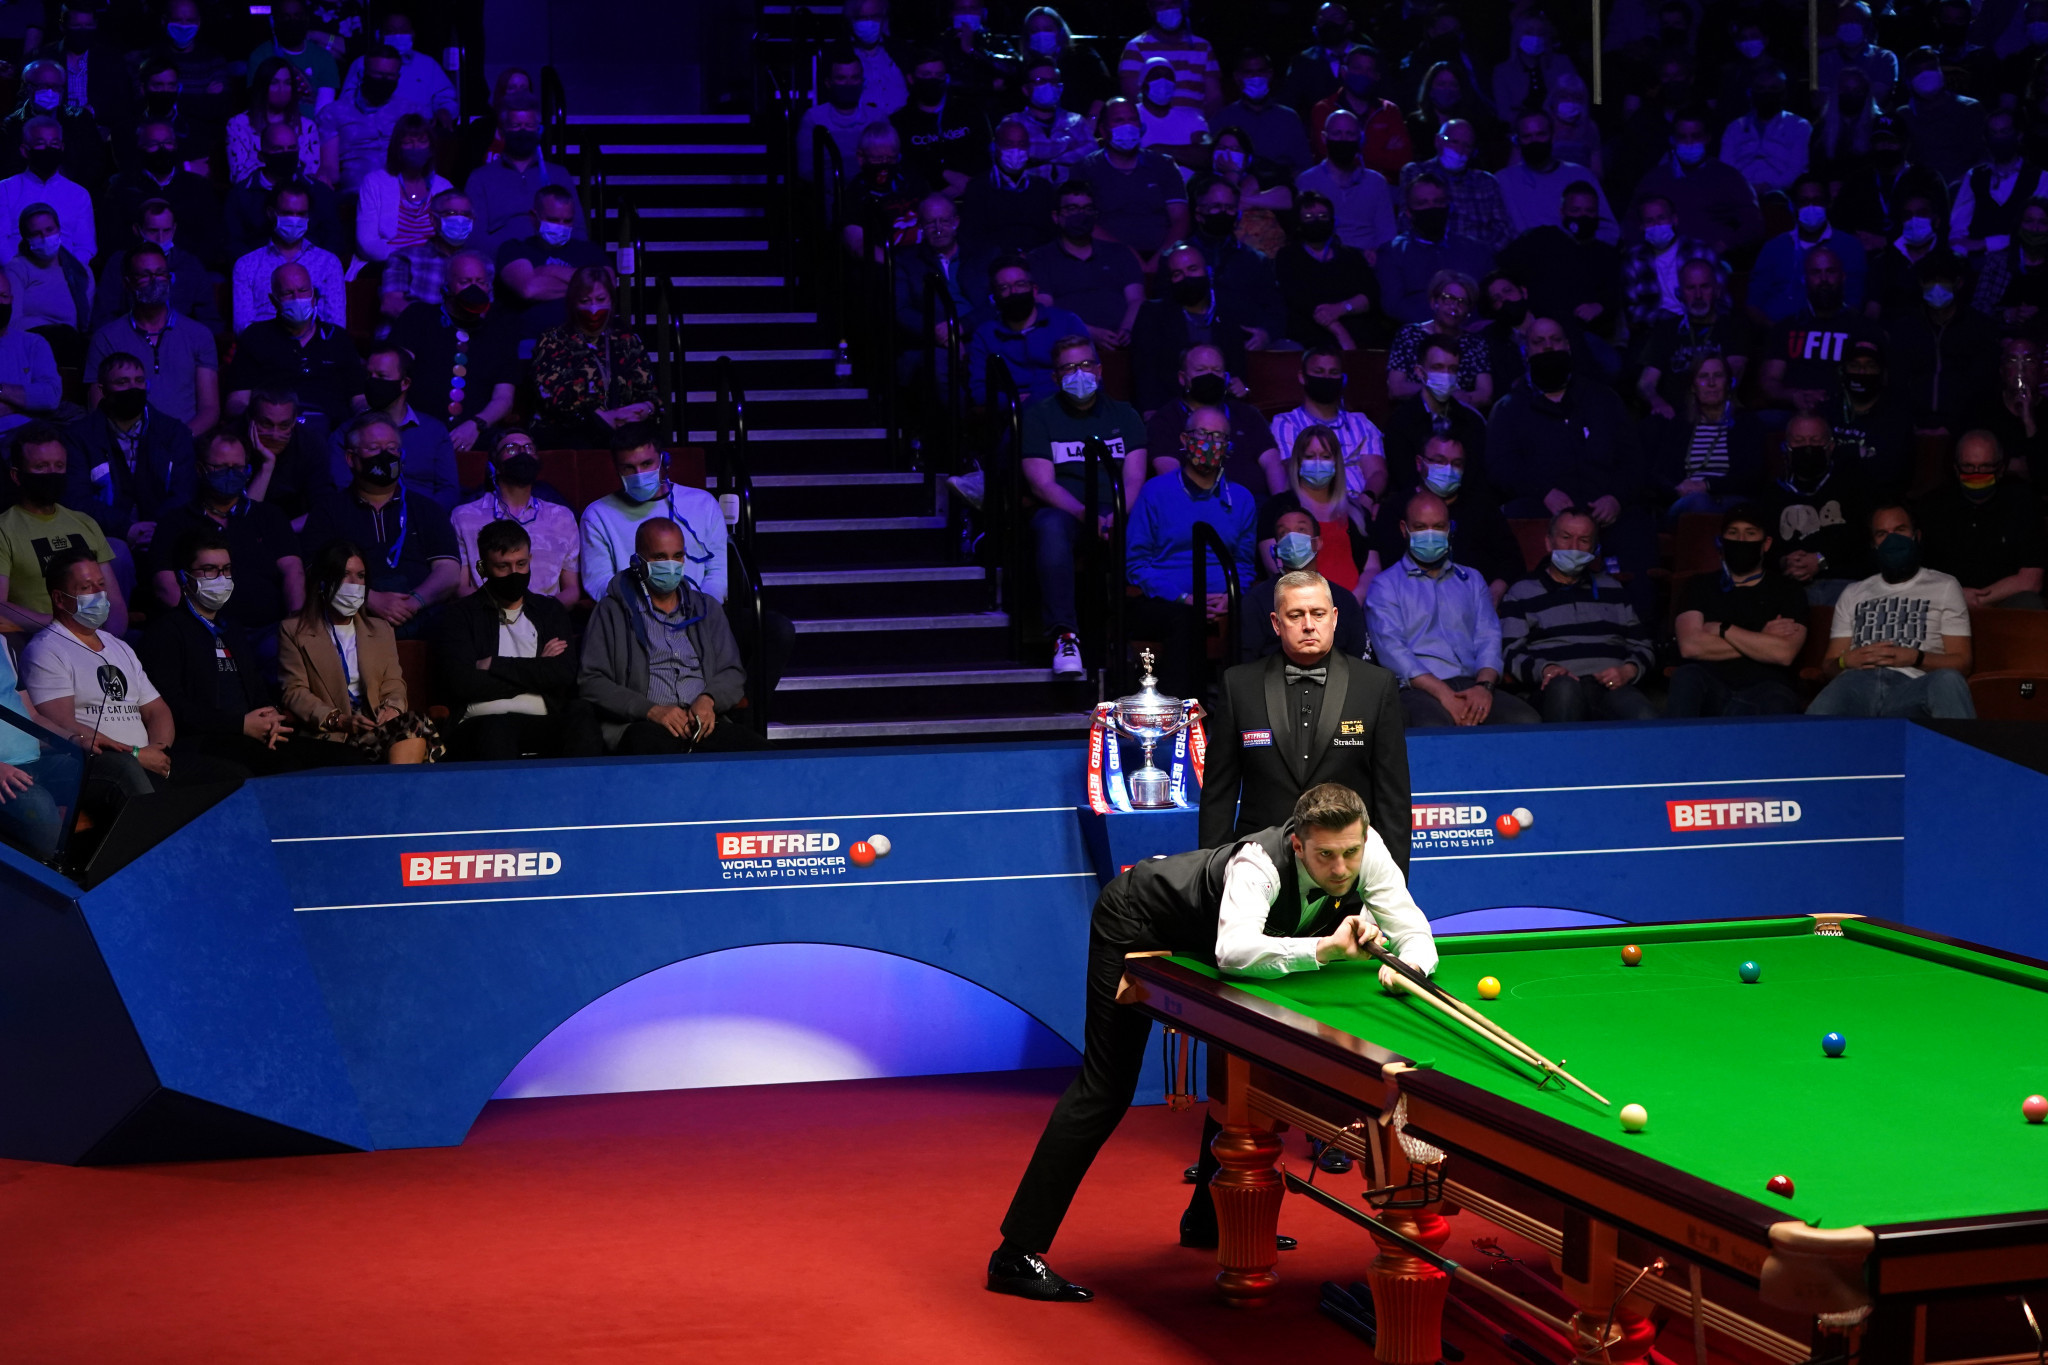 Selby battles into three frame lead against Murphy after opening day of World Snooker Championship final